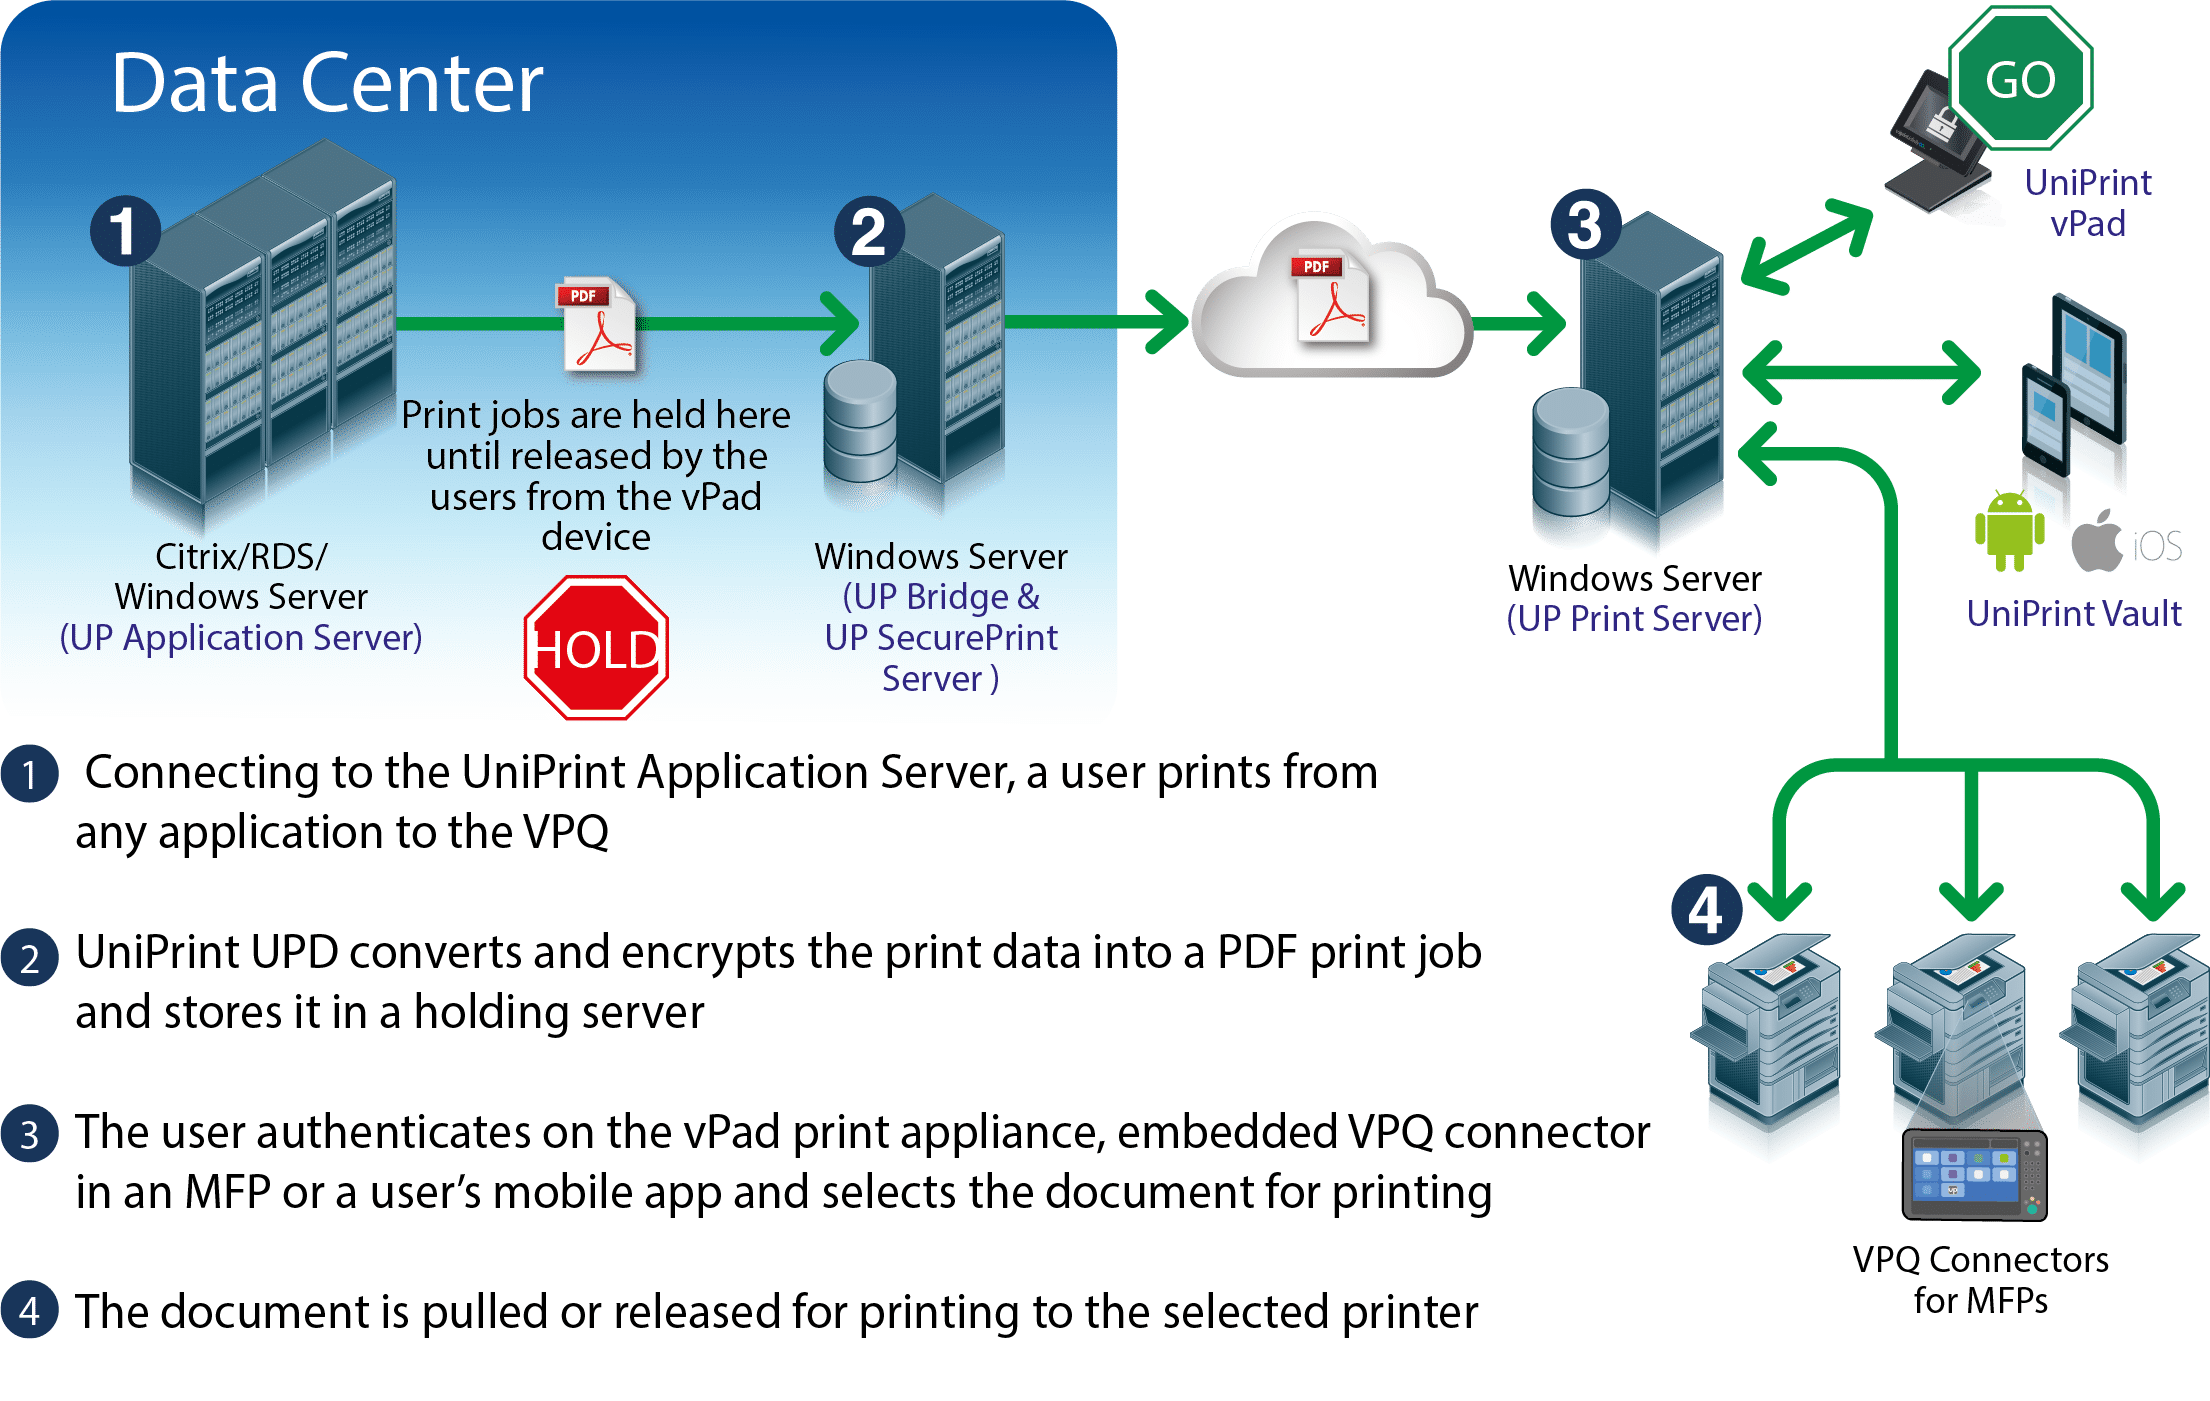 uniprint infinity secure pull printing diagram how it works